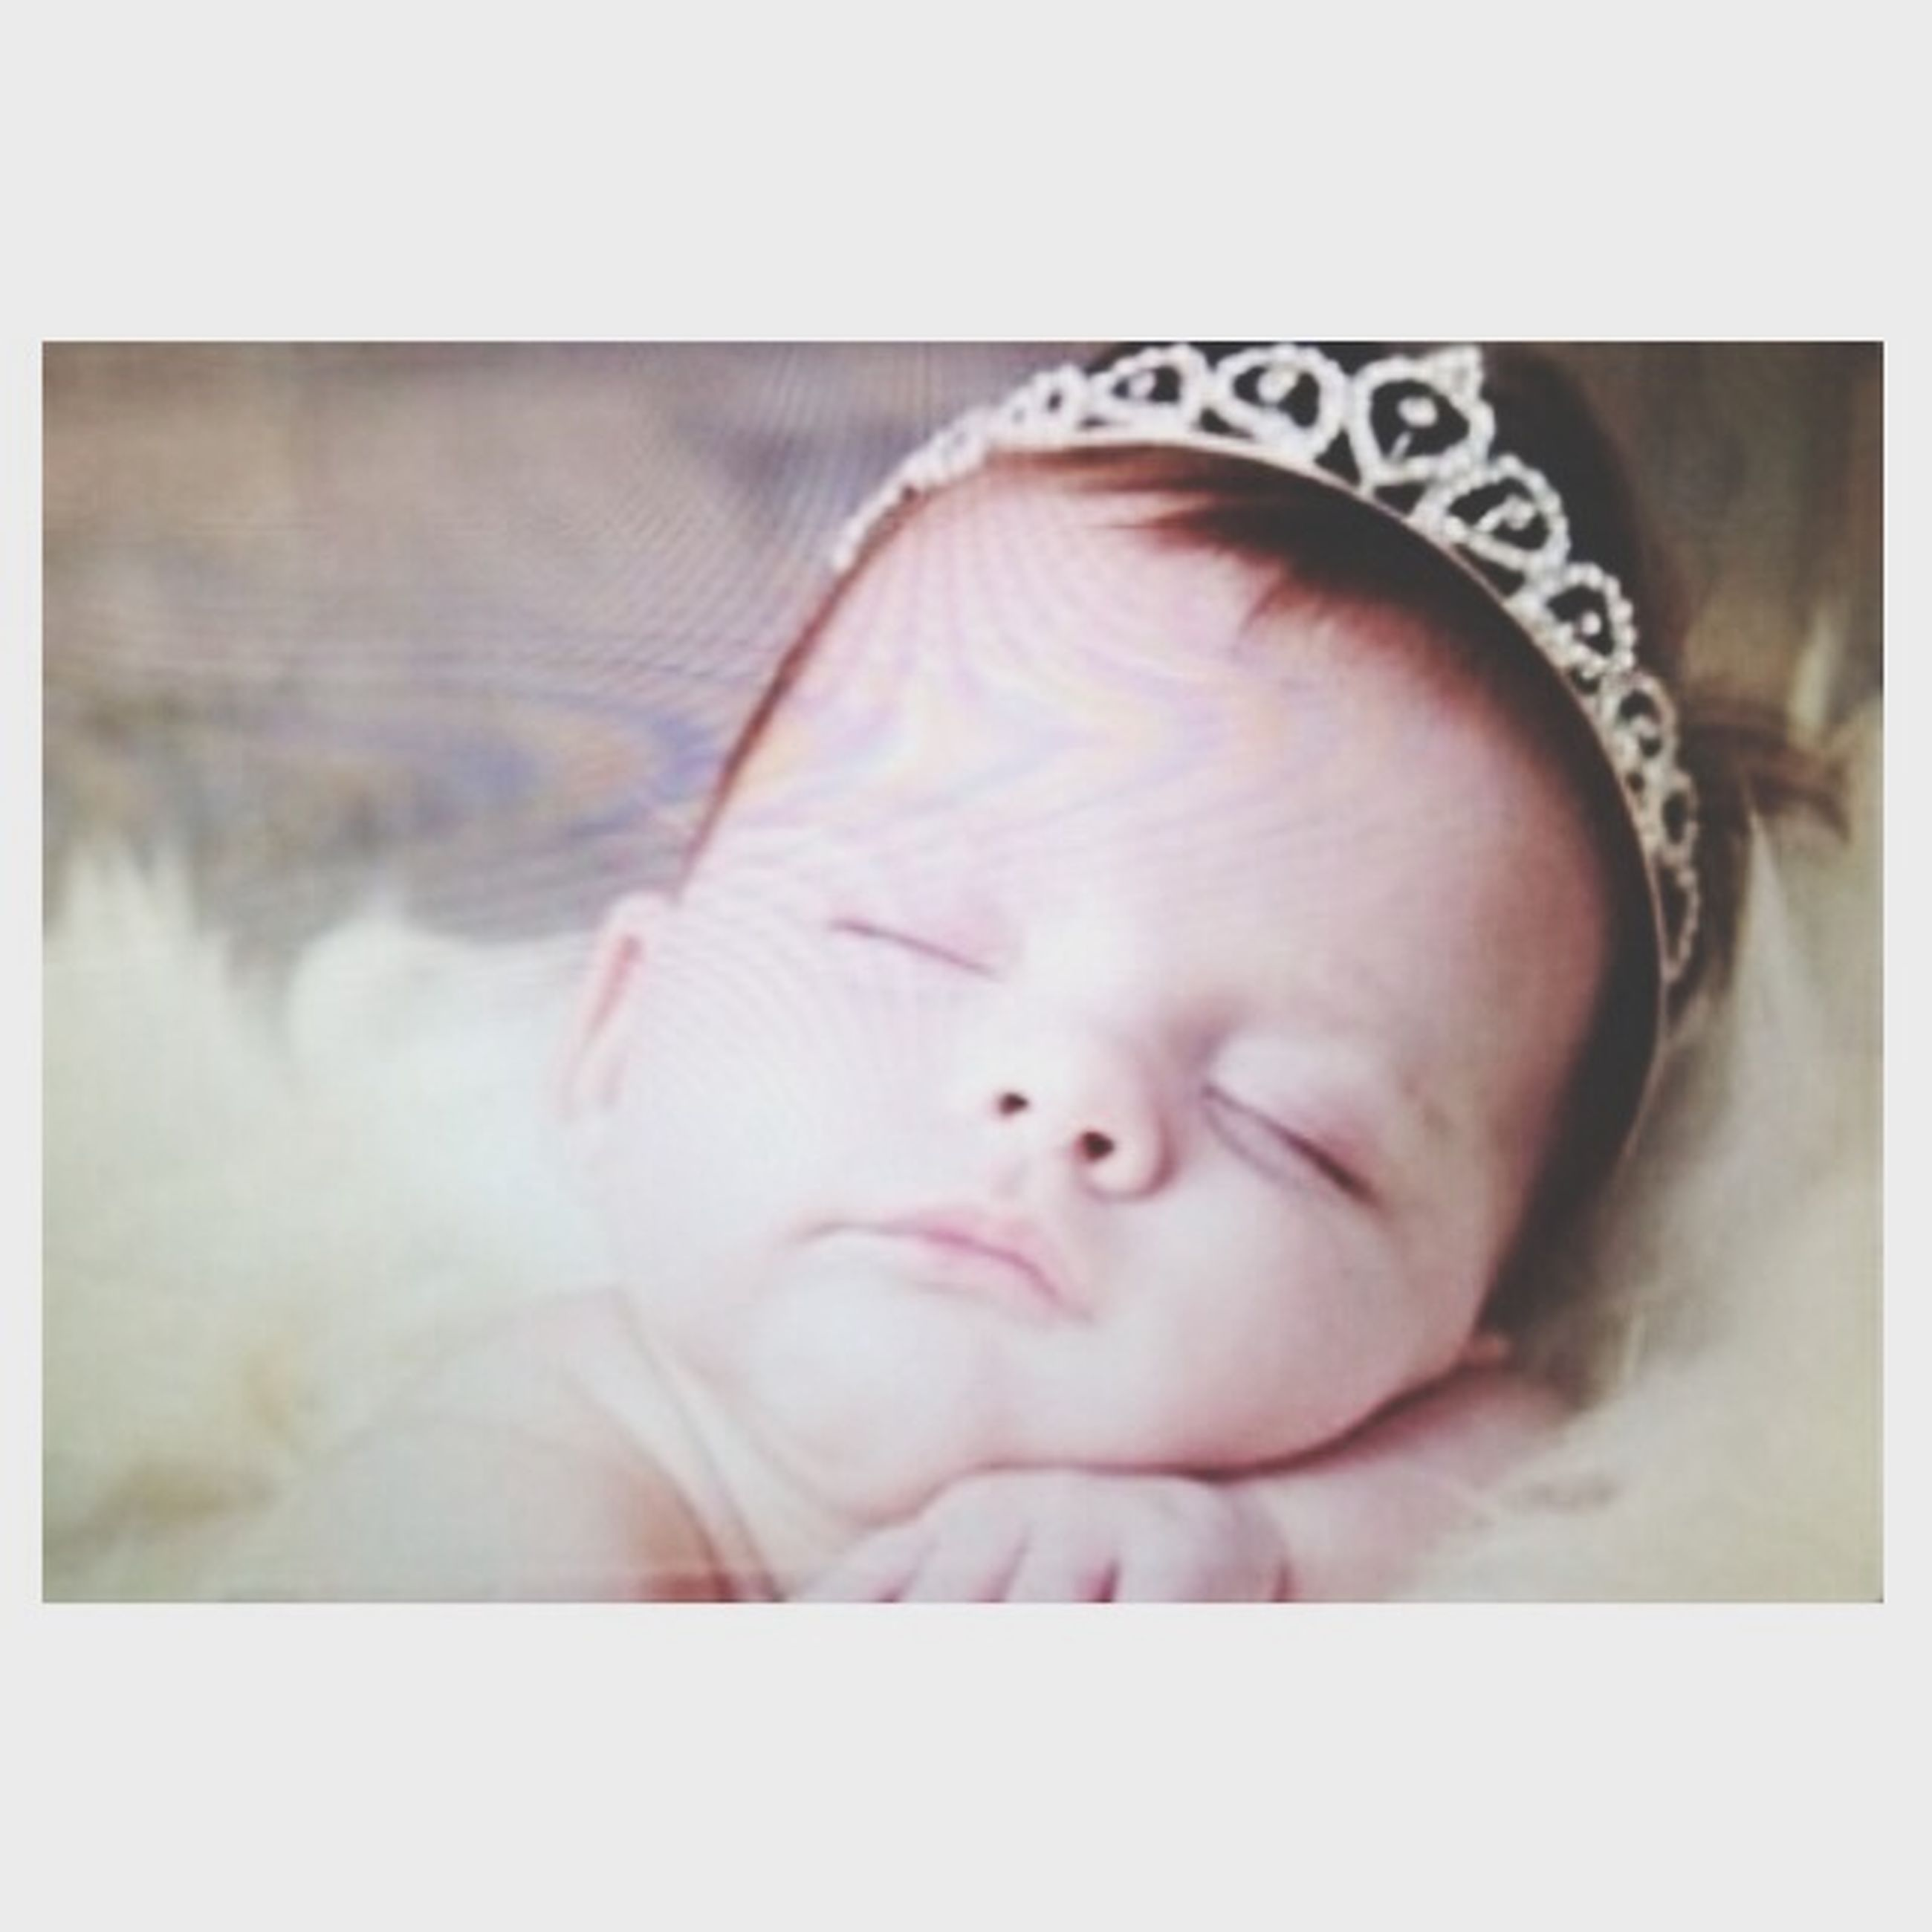 transfer print, auto post production filter, close-up, lifestyles, indoors, childhood, cute, person, innocence, headshot, relaxation, babyhood, leisure activity, baby, eyes closed, sleeping, human face